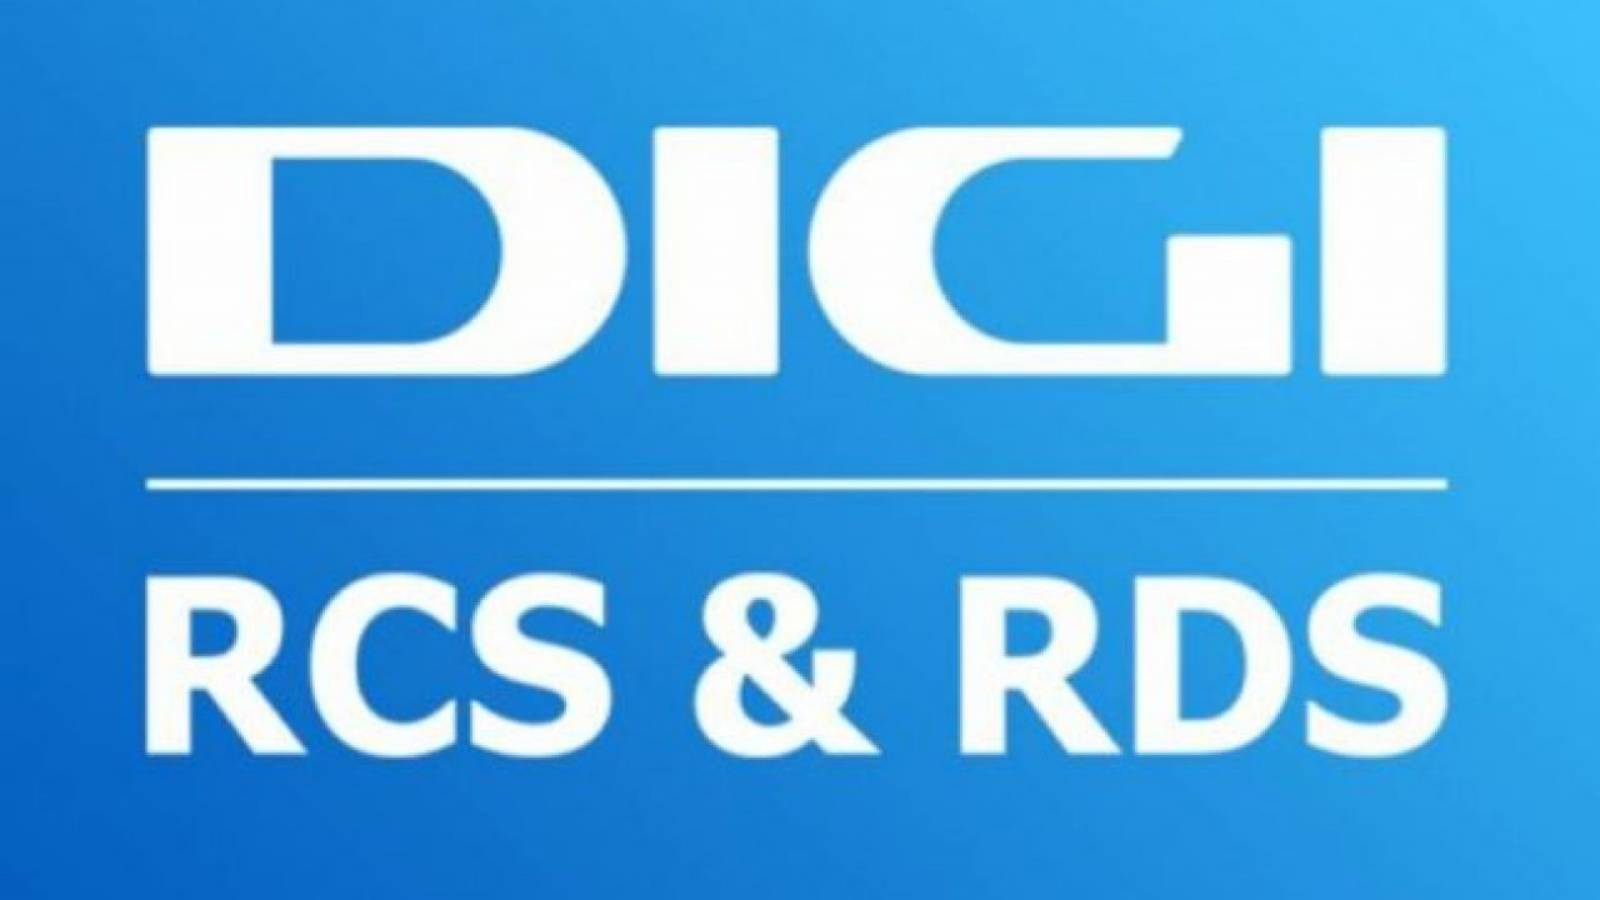 RCS & RDS camere